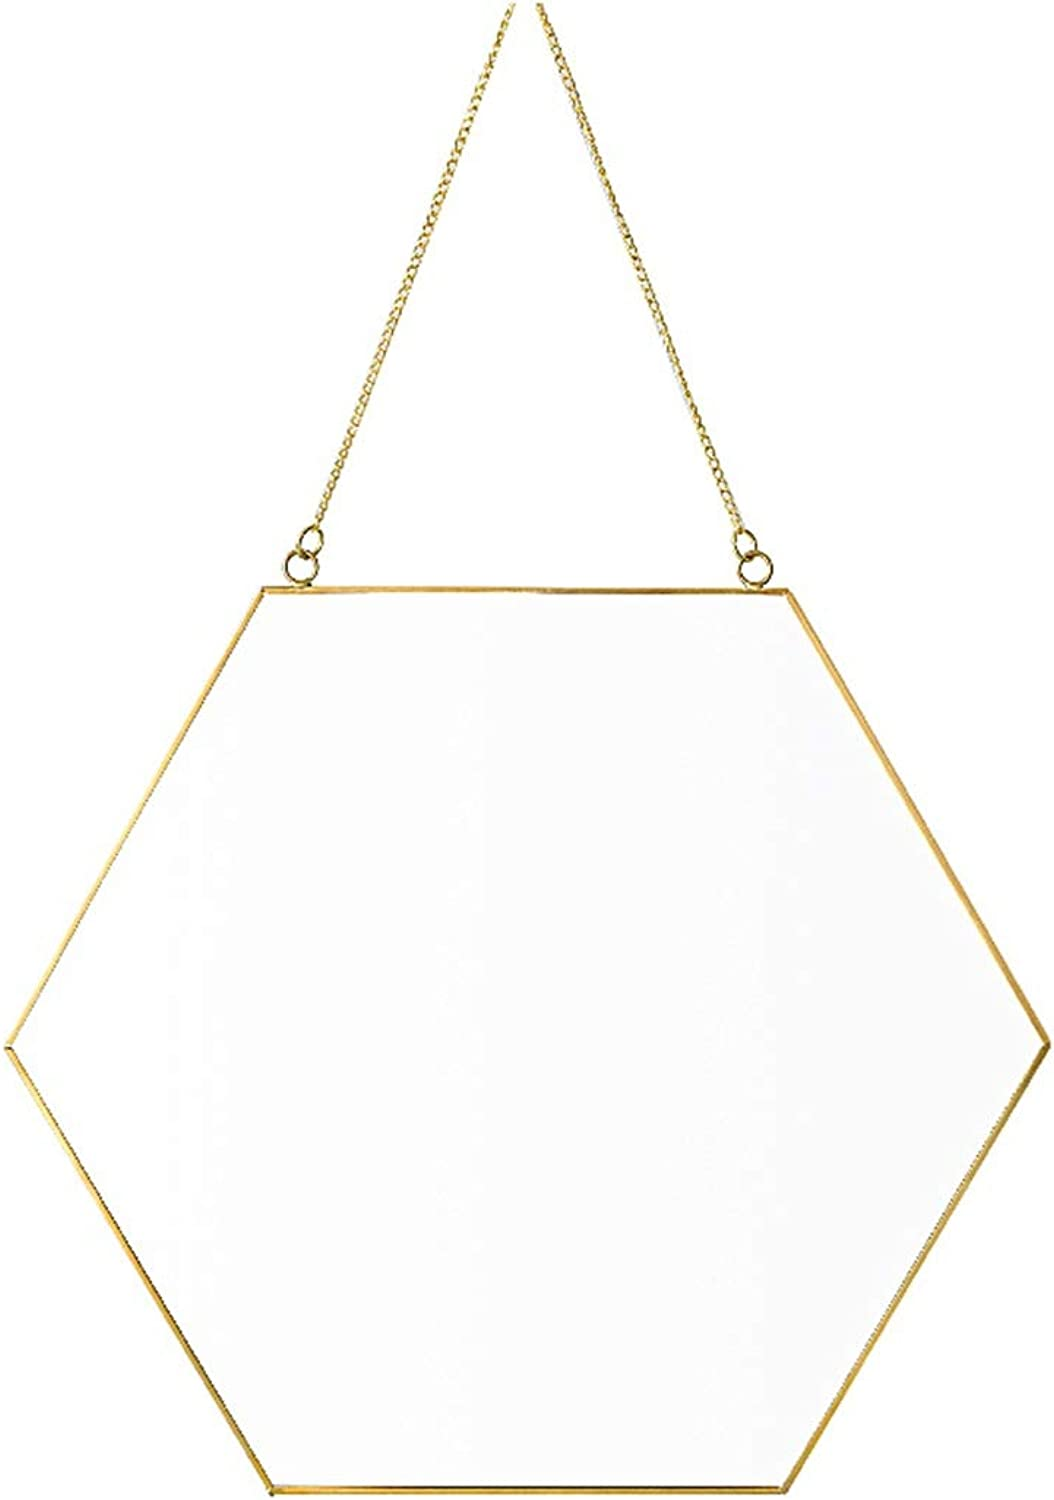 Hanging Wall Mirror Makeup Dressing Home Decor in Bathroom & Bedroom Shaving Iron Mirrors with Hanging Chain Metal Frame (9.4 inch 12 inch 15.7 inch)